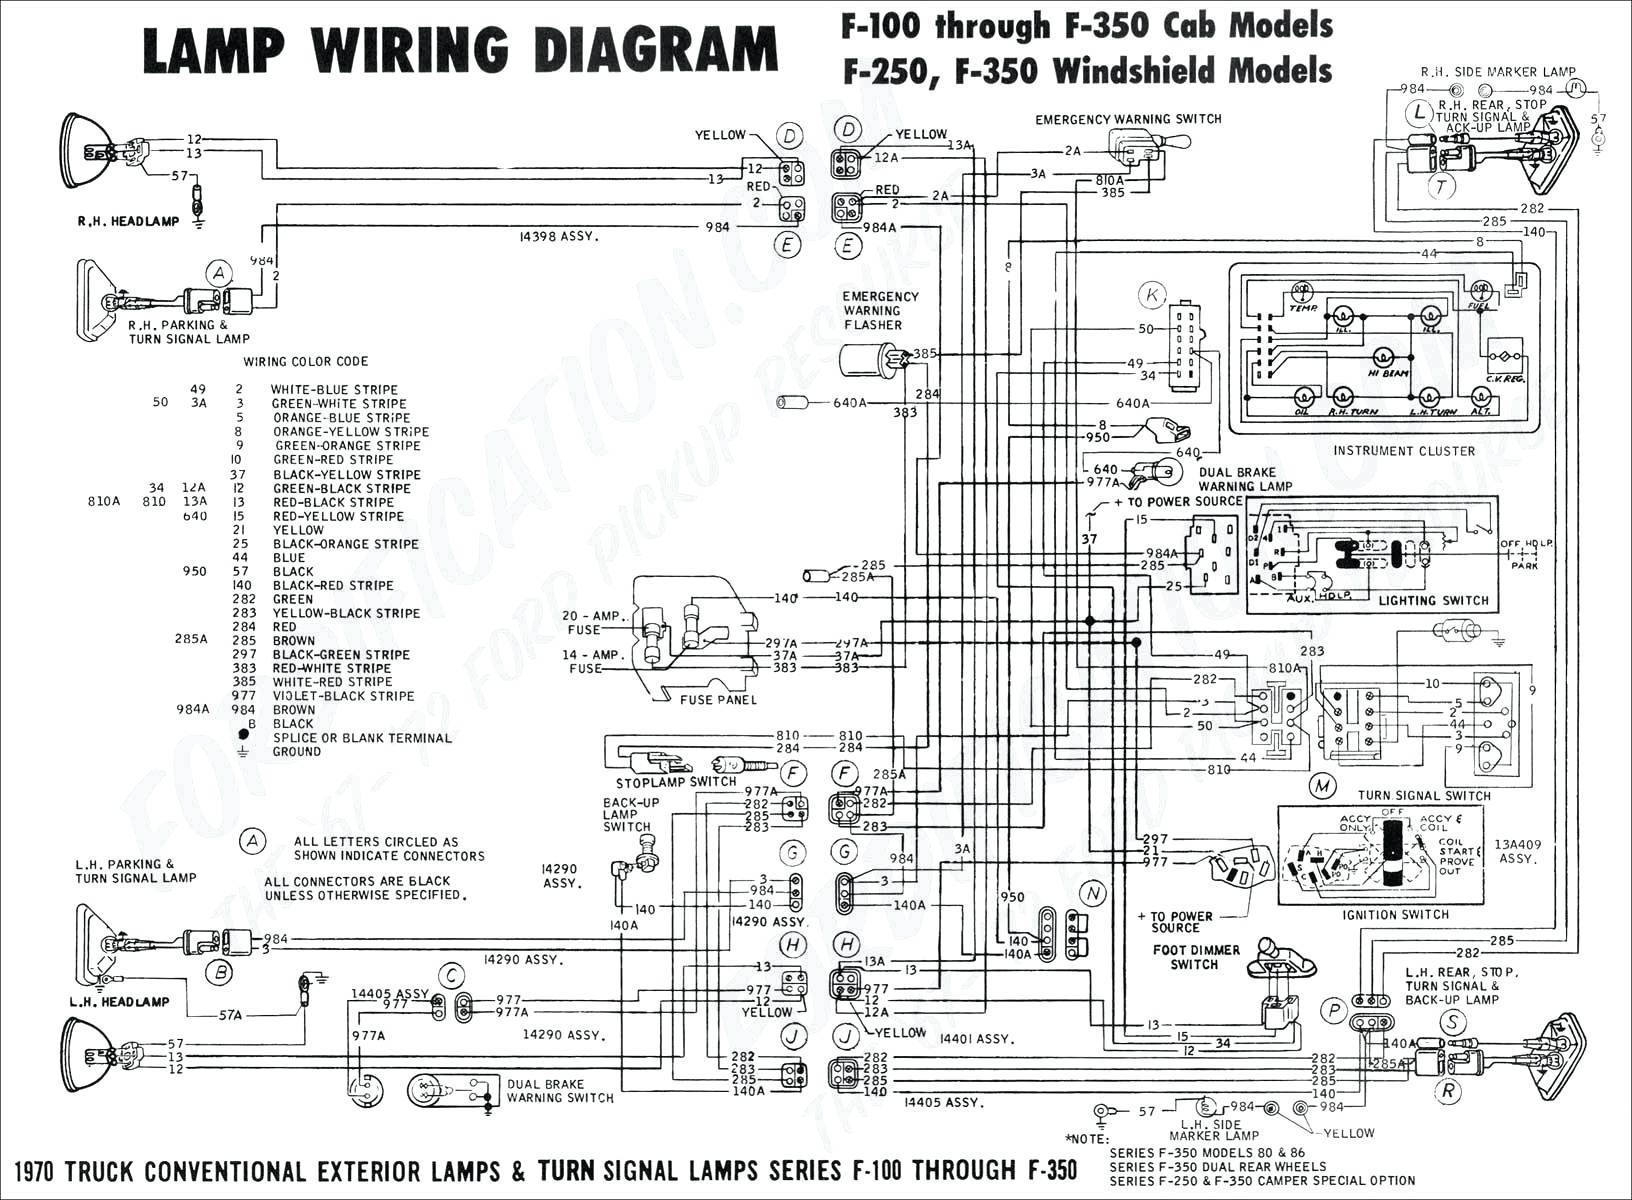 21 Hp Briggs and Stratton Engine Diagram Briggs and Stratton Ignition System Diagram Worksheet and Wiring Of 21 Hp Briggs and Stratton Engine Diagram